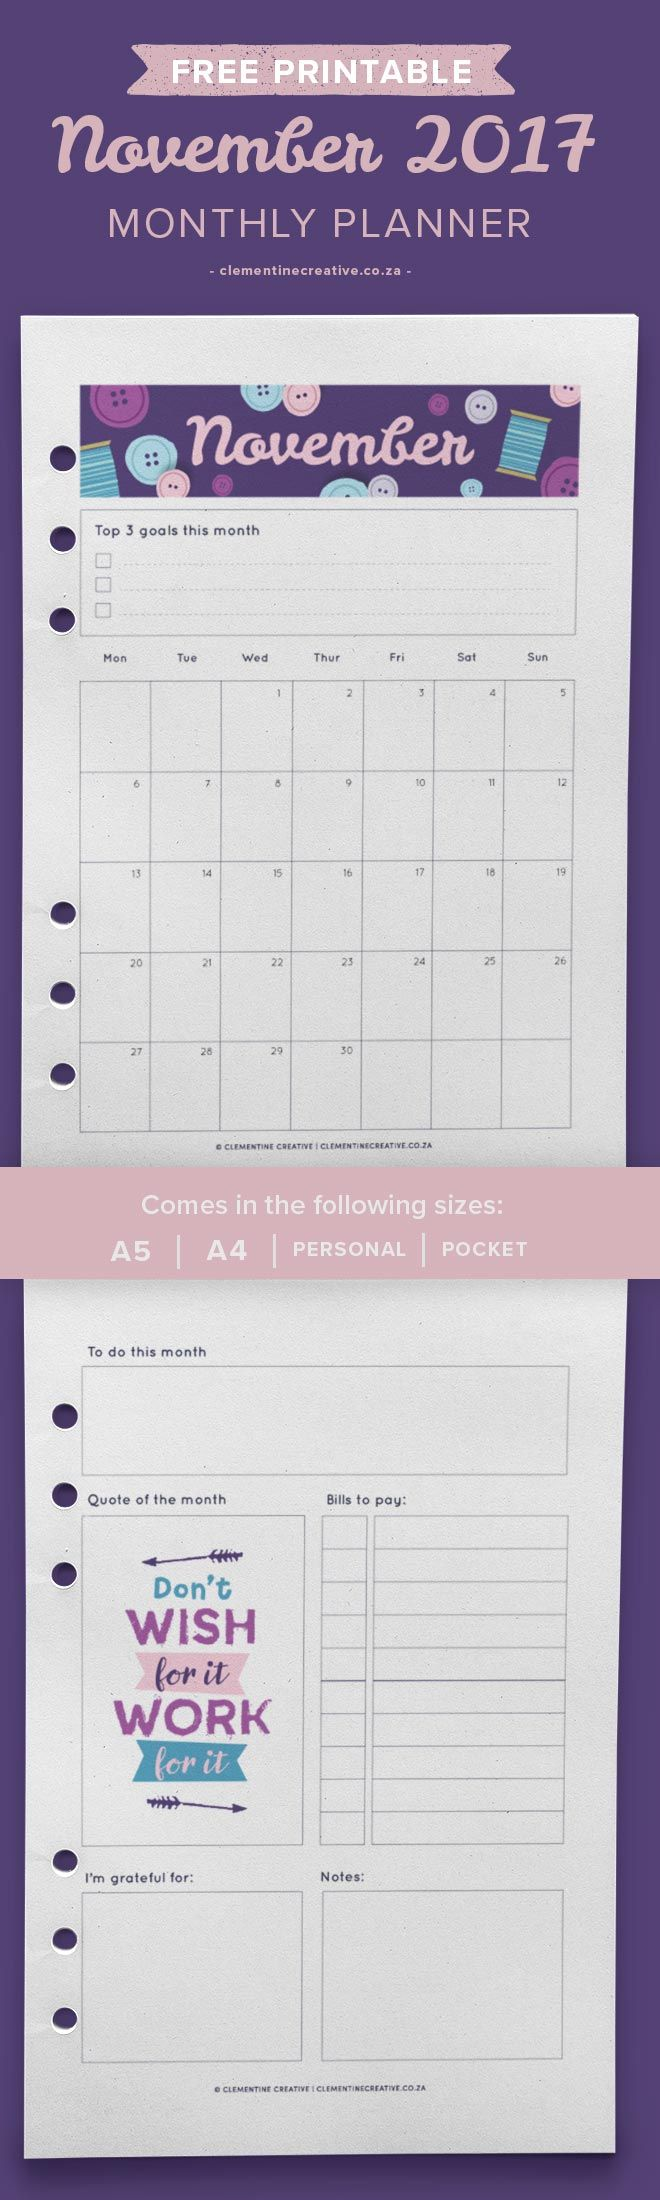 Free Printable November 2017 Monthly Planner. Available in A5, A4, Personal and Pocket sizes. Add instant cheeriness and brightness to your planner!